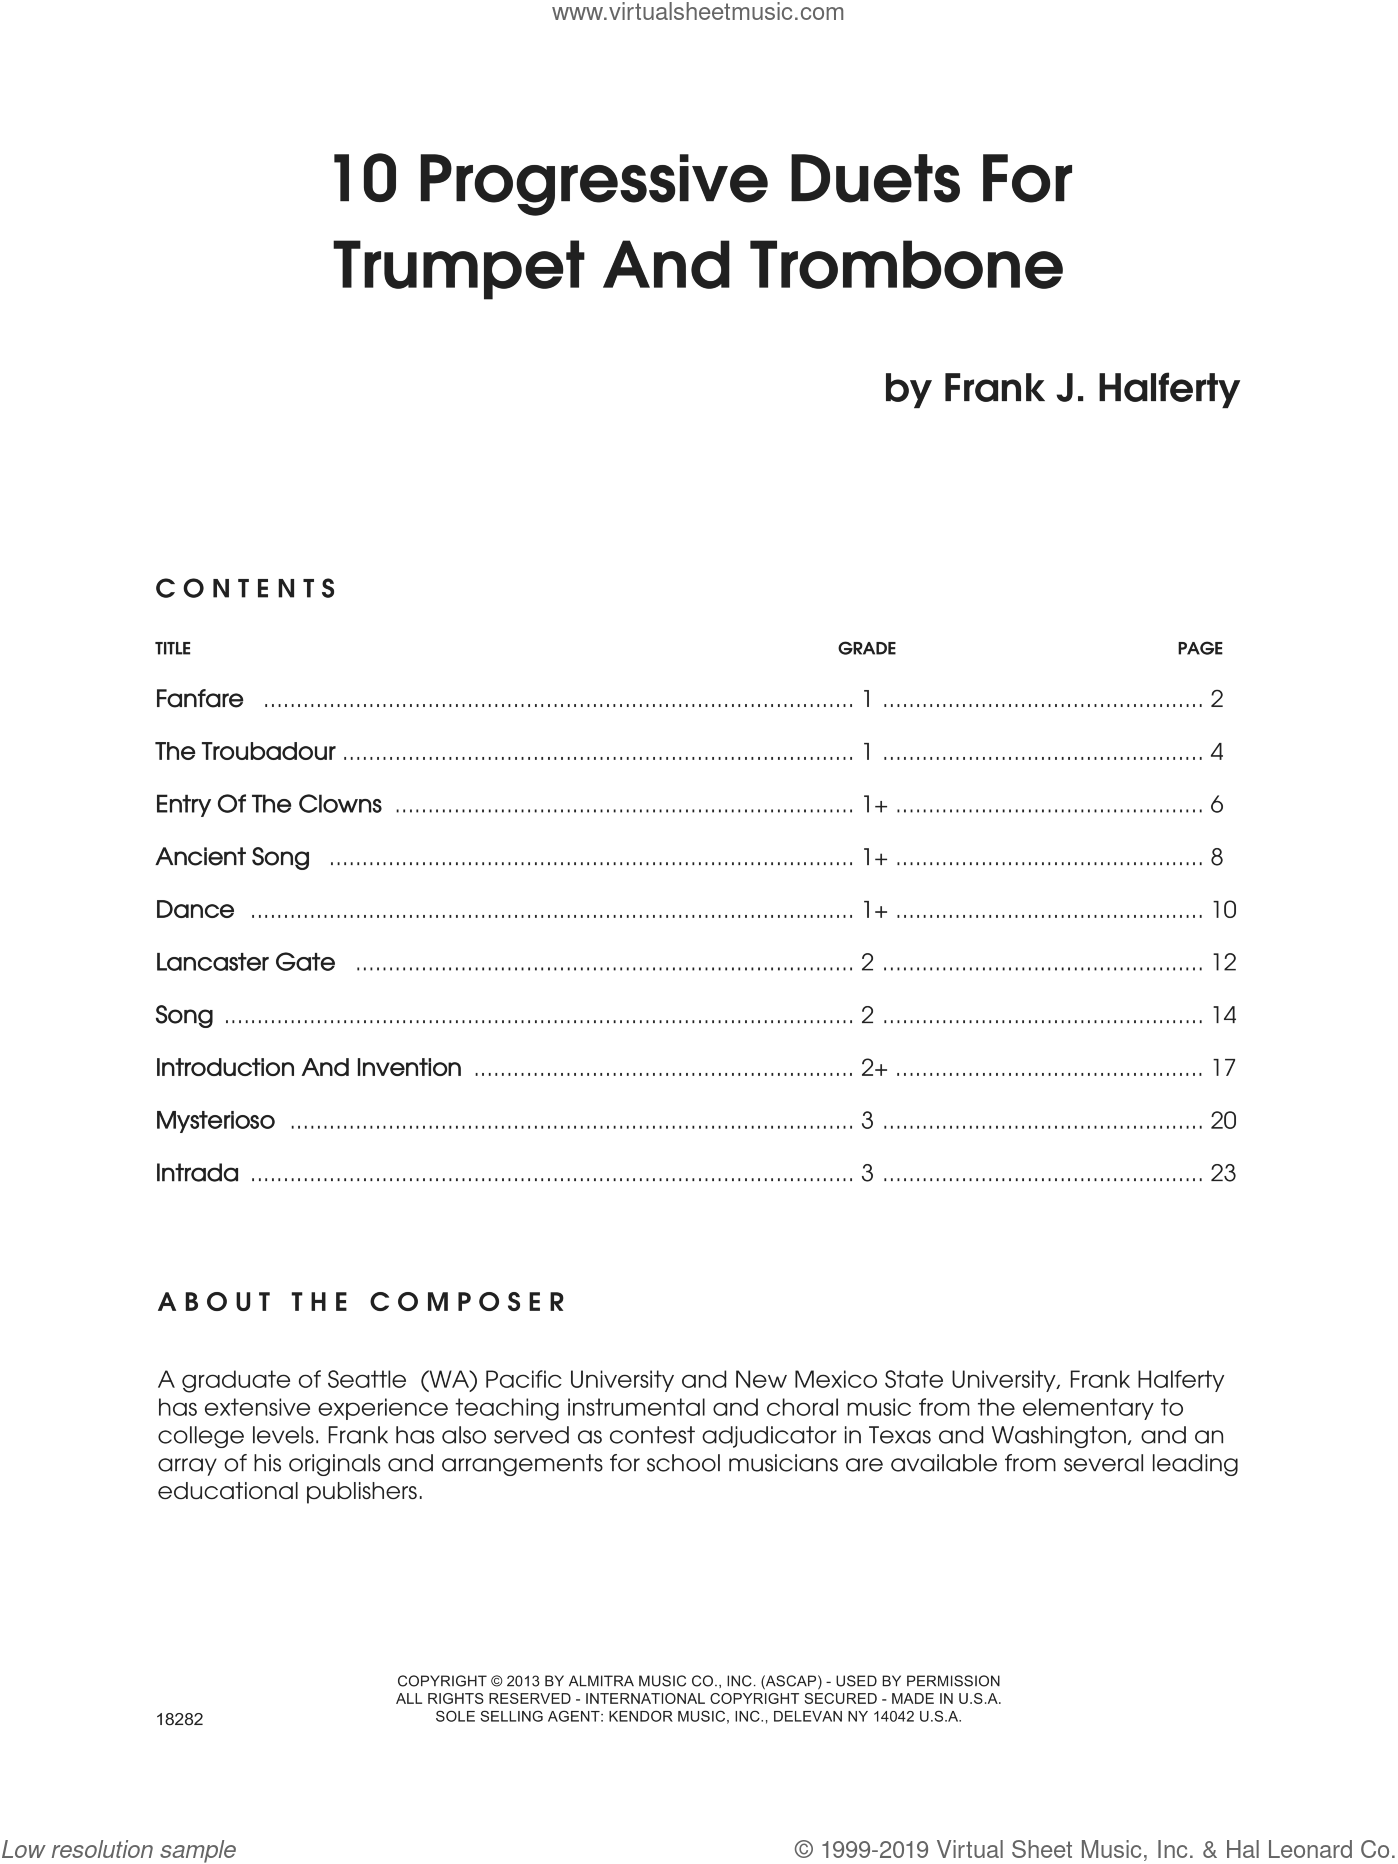 10 Progressive Duets For Trumpet And Trombone sheet music for trumpet and trombone by Halferty. Score Image Preview.